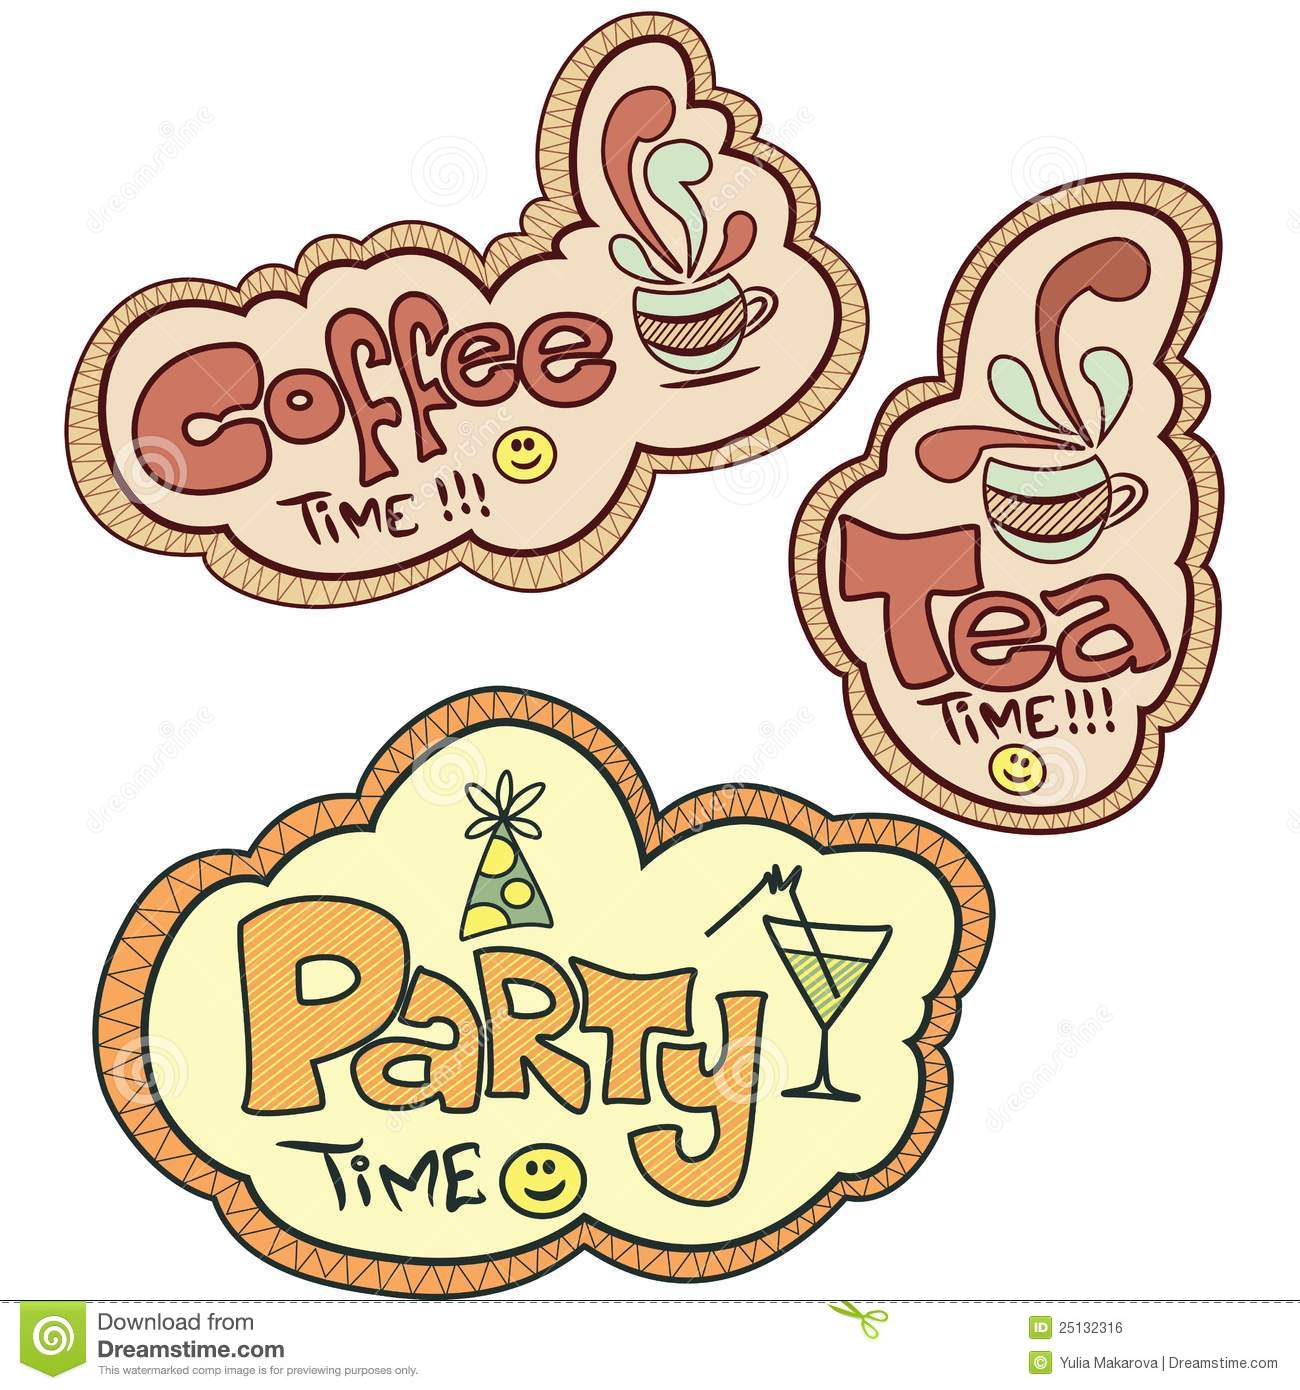 clipart coffee time - photo #10